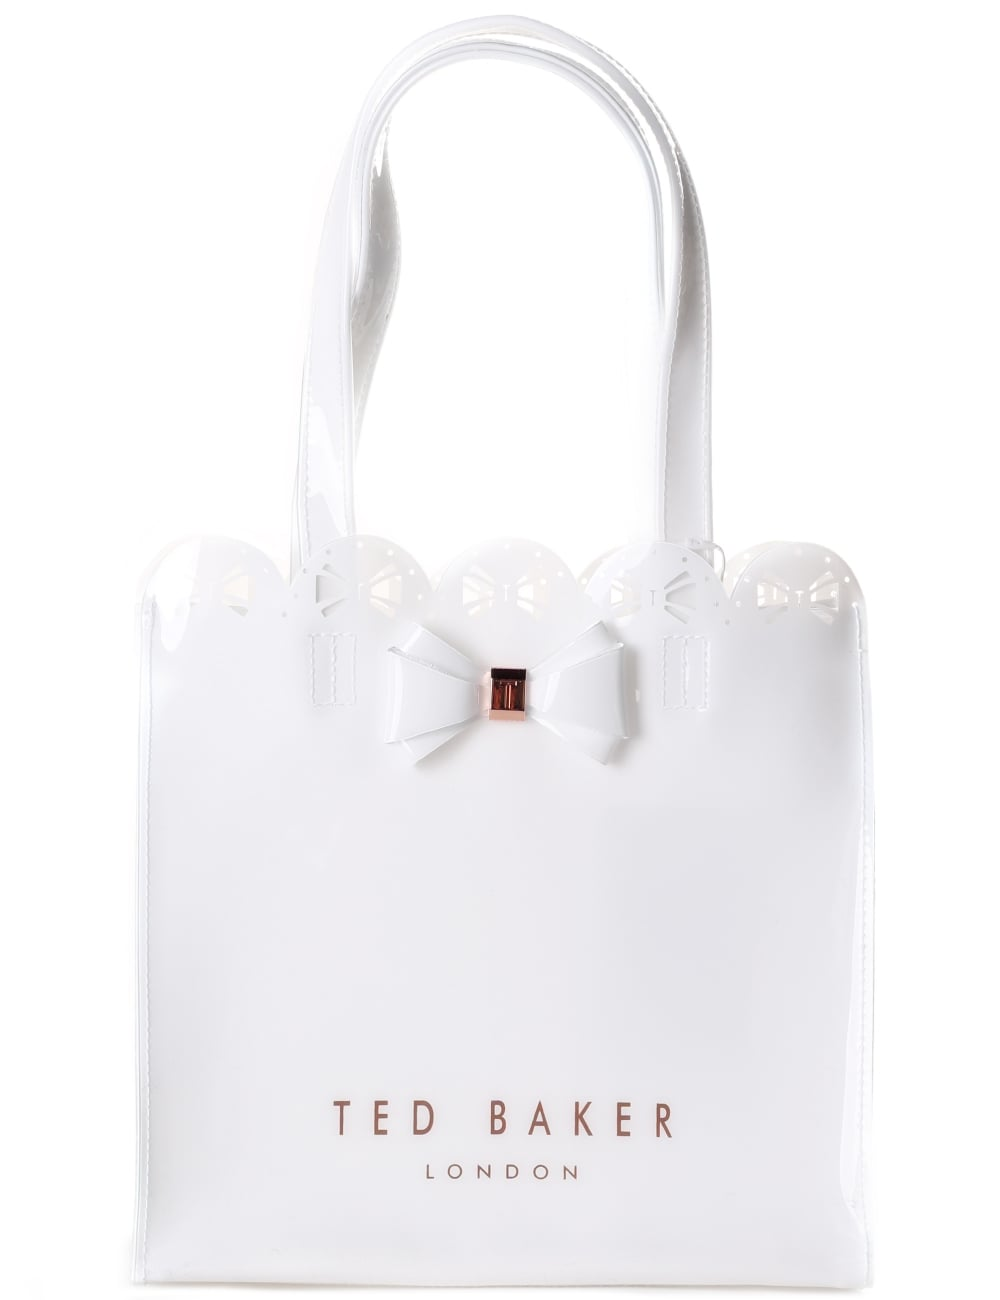 4c52a270fe4b5 Ted Baker Ellicon Women s Small Bow Tote Bag White